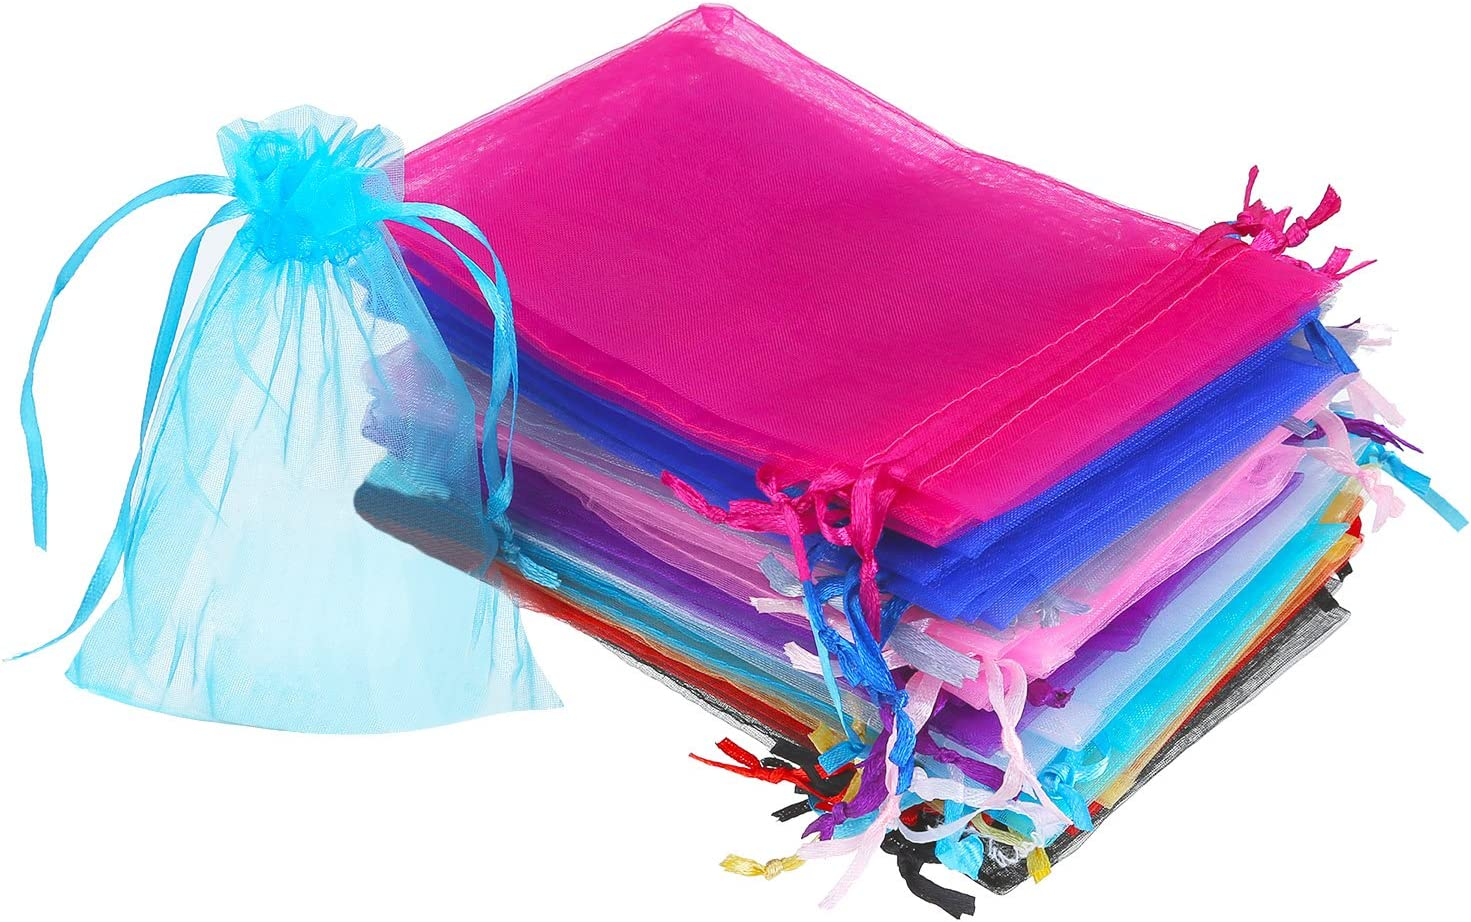 Mudder 50 Pieces 4 by 6 Inch Organza Gift Bags Drawstring Jewelry Pouches Wedding Party Favor Bags (Multicolor)